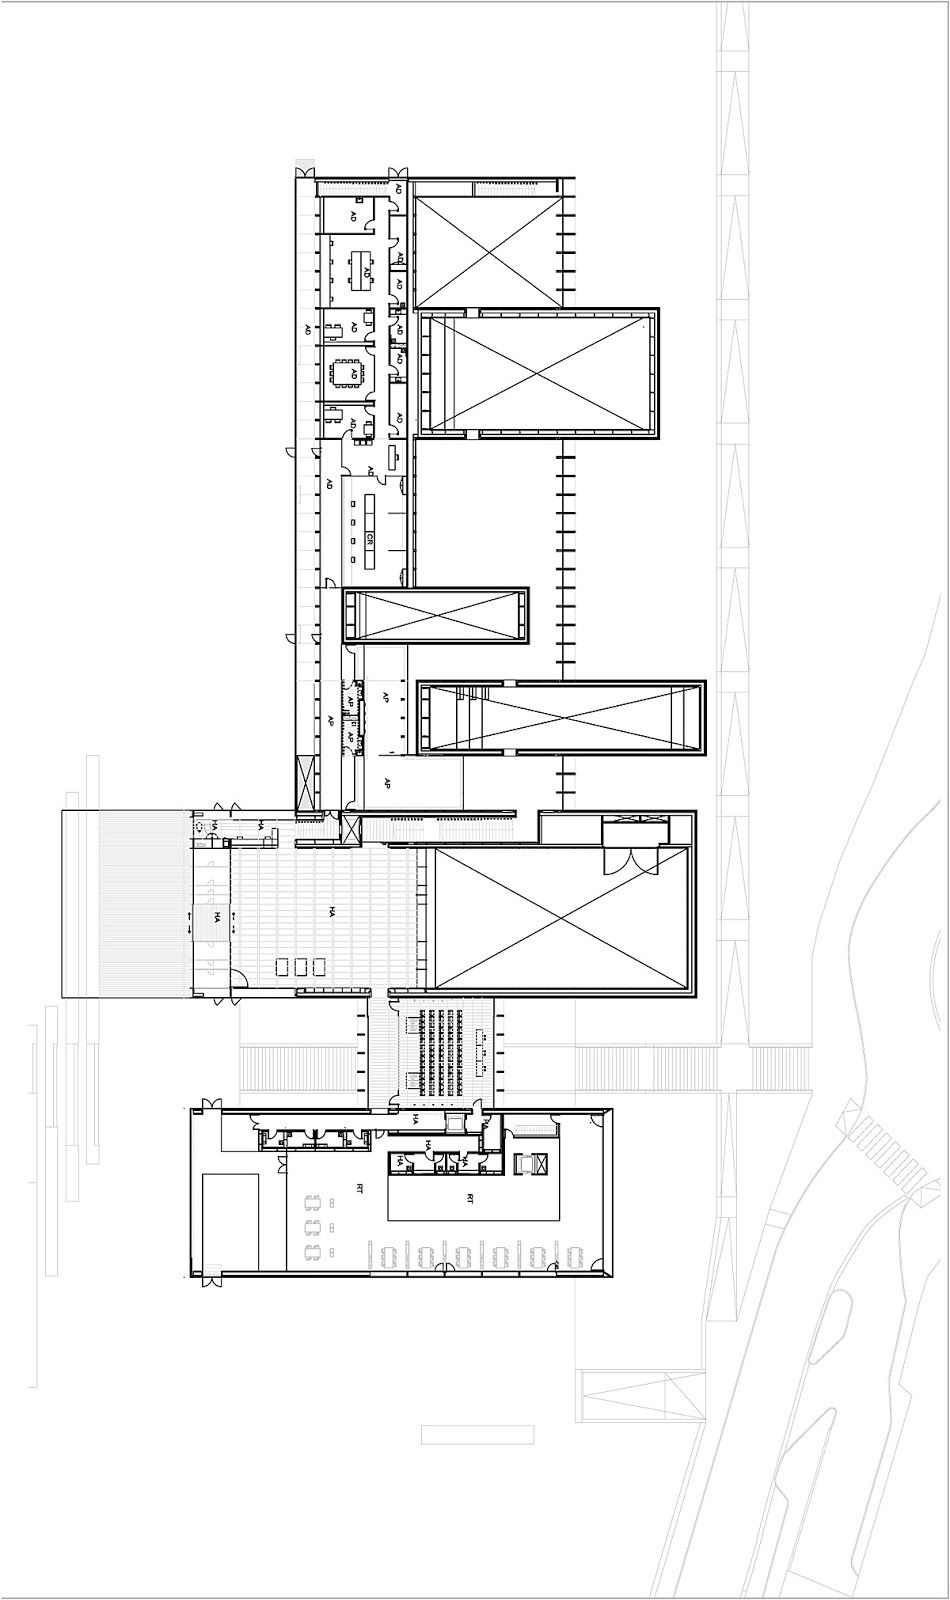 bell lloc winery by rcr architects sketches drawings bell lloc winery by rcr architects sketches drawings pinterest landscape architecture architects and architecture